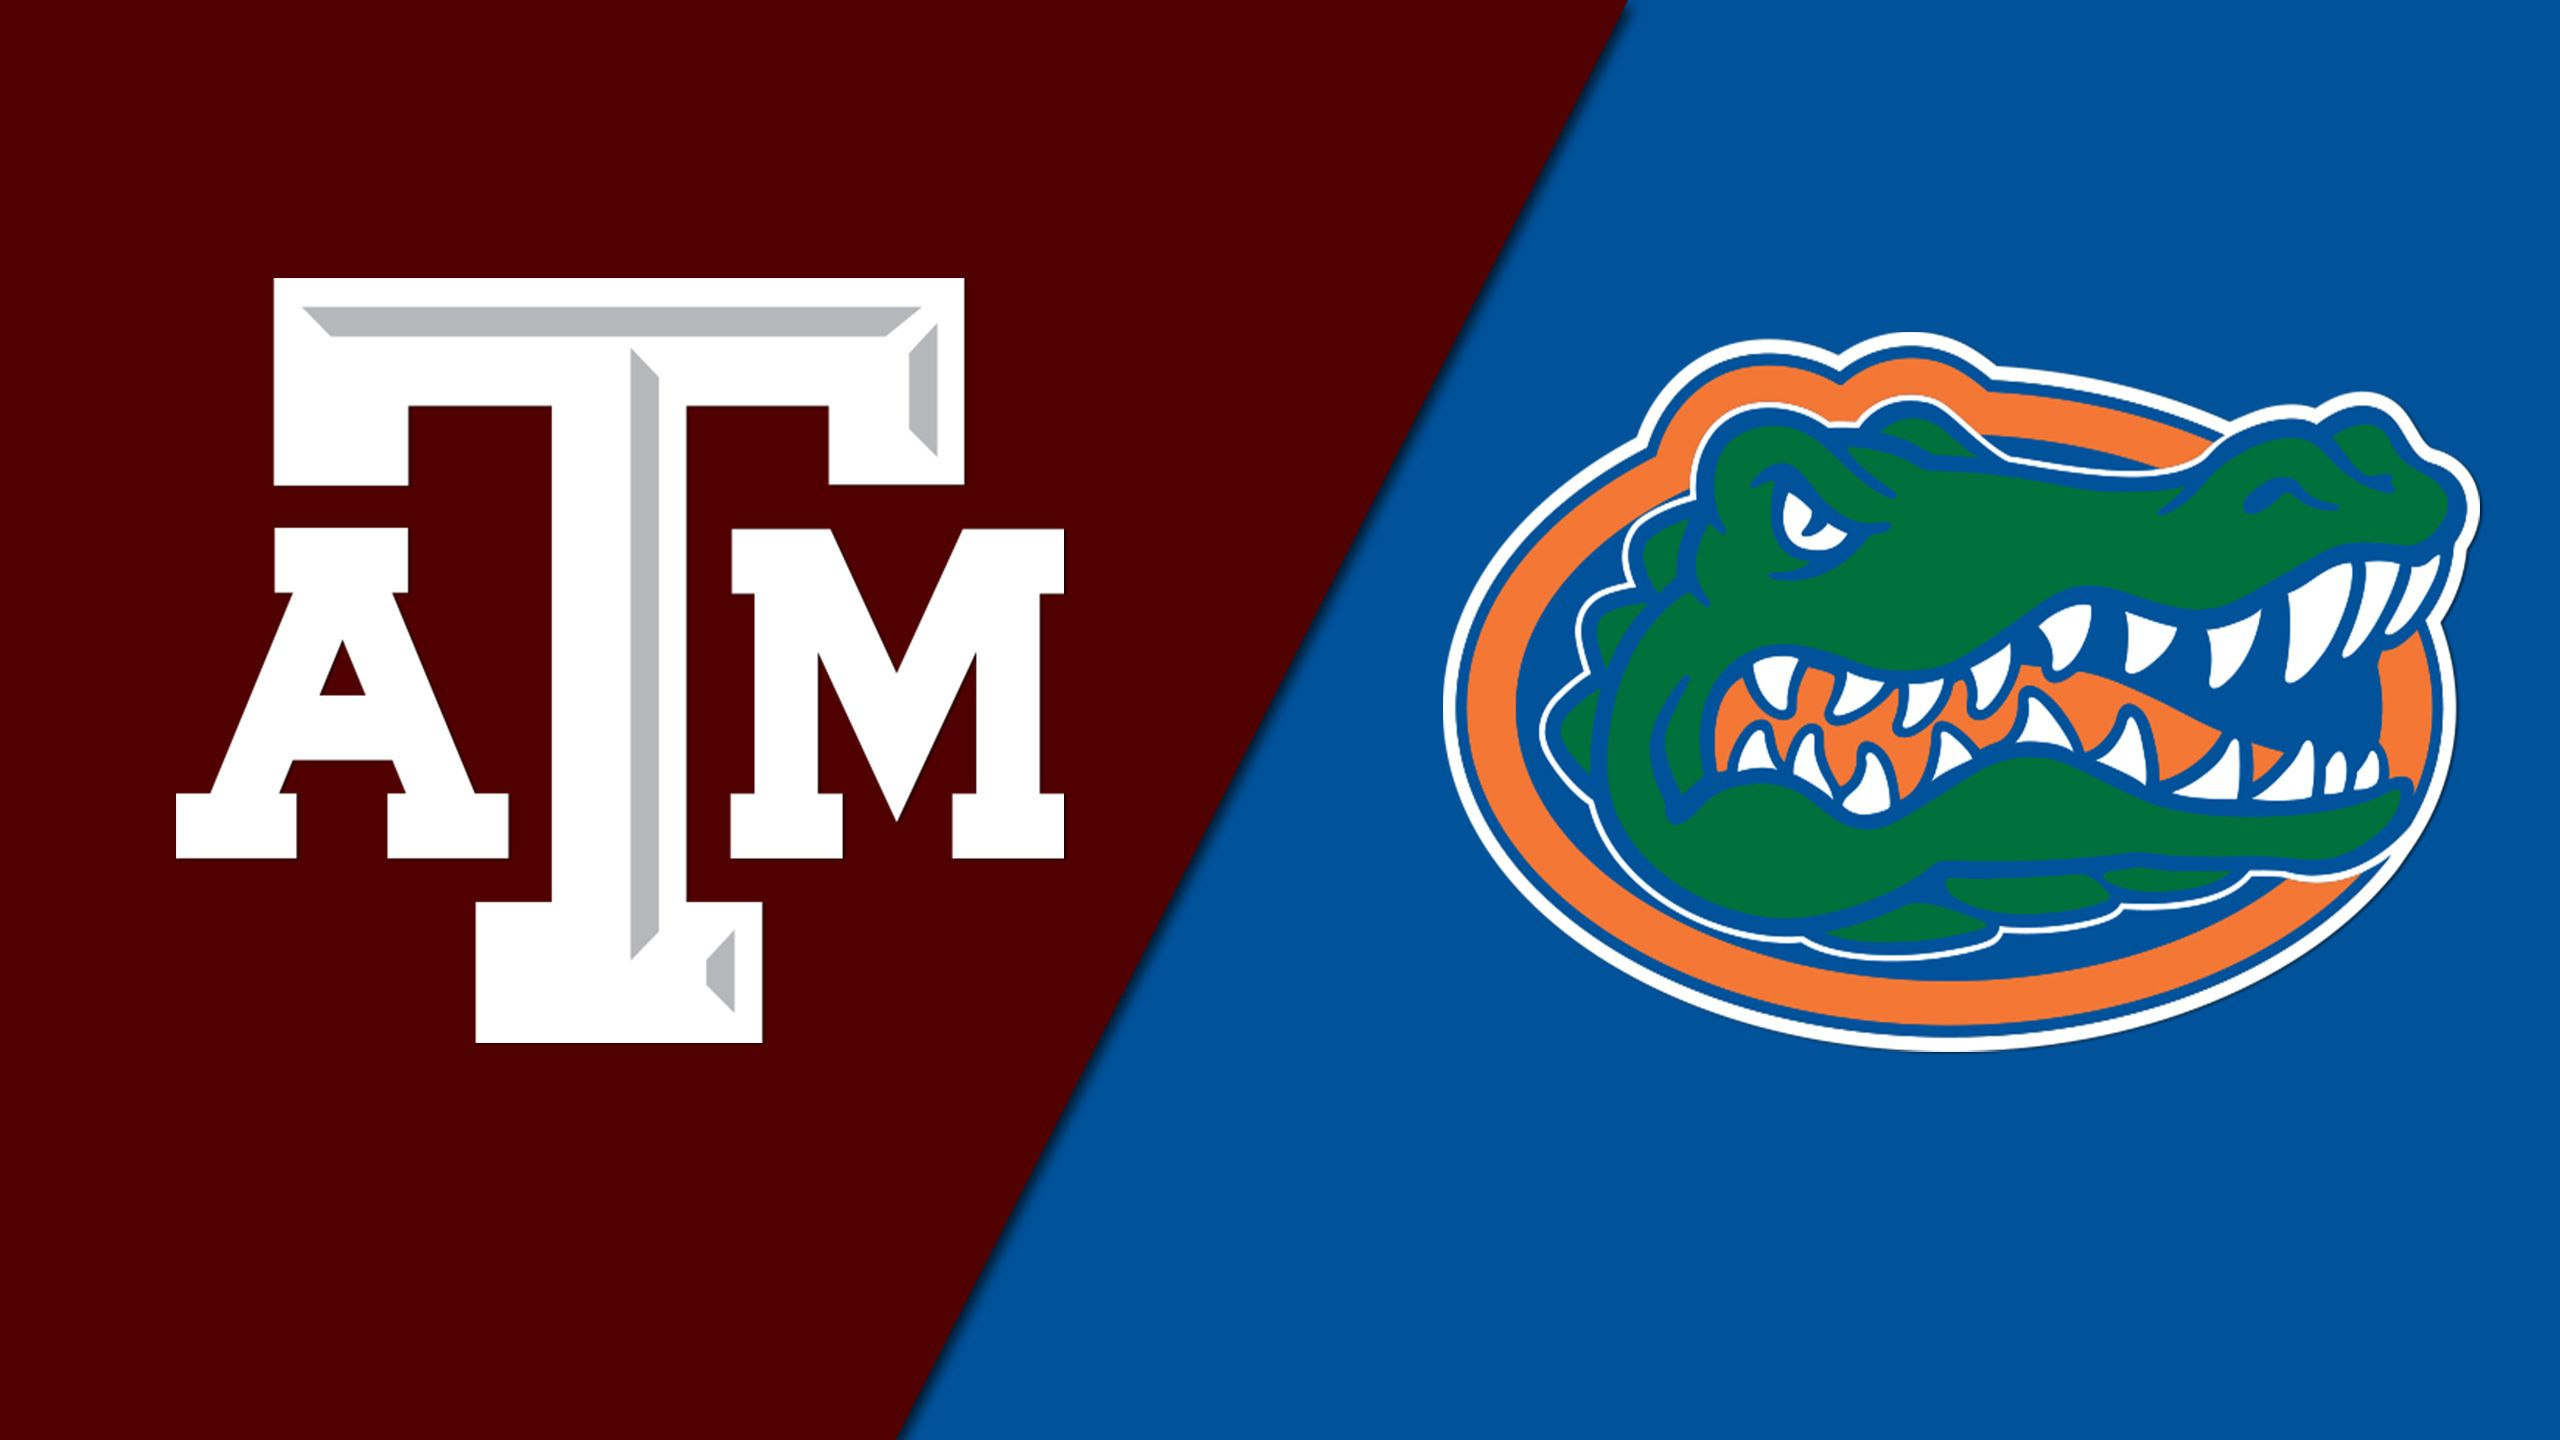 #8 Texas A&M vs. #6 Florida (Softball)